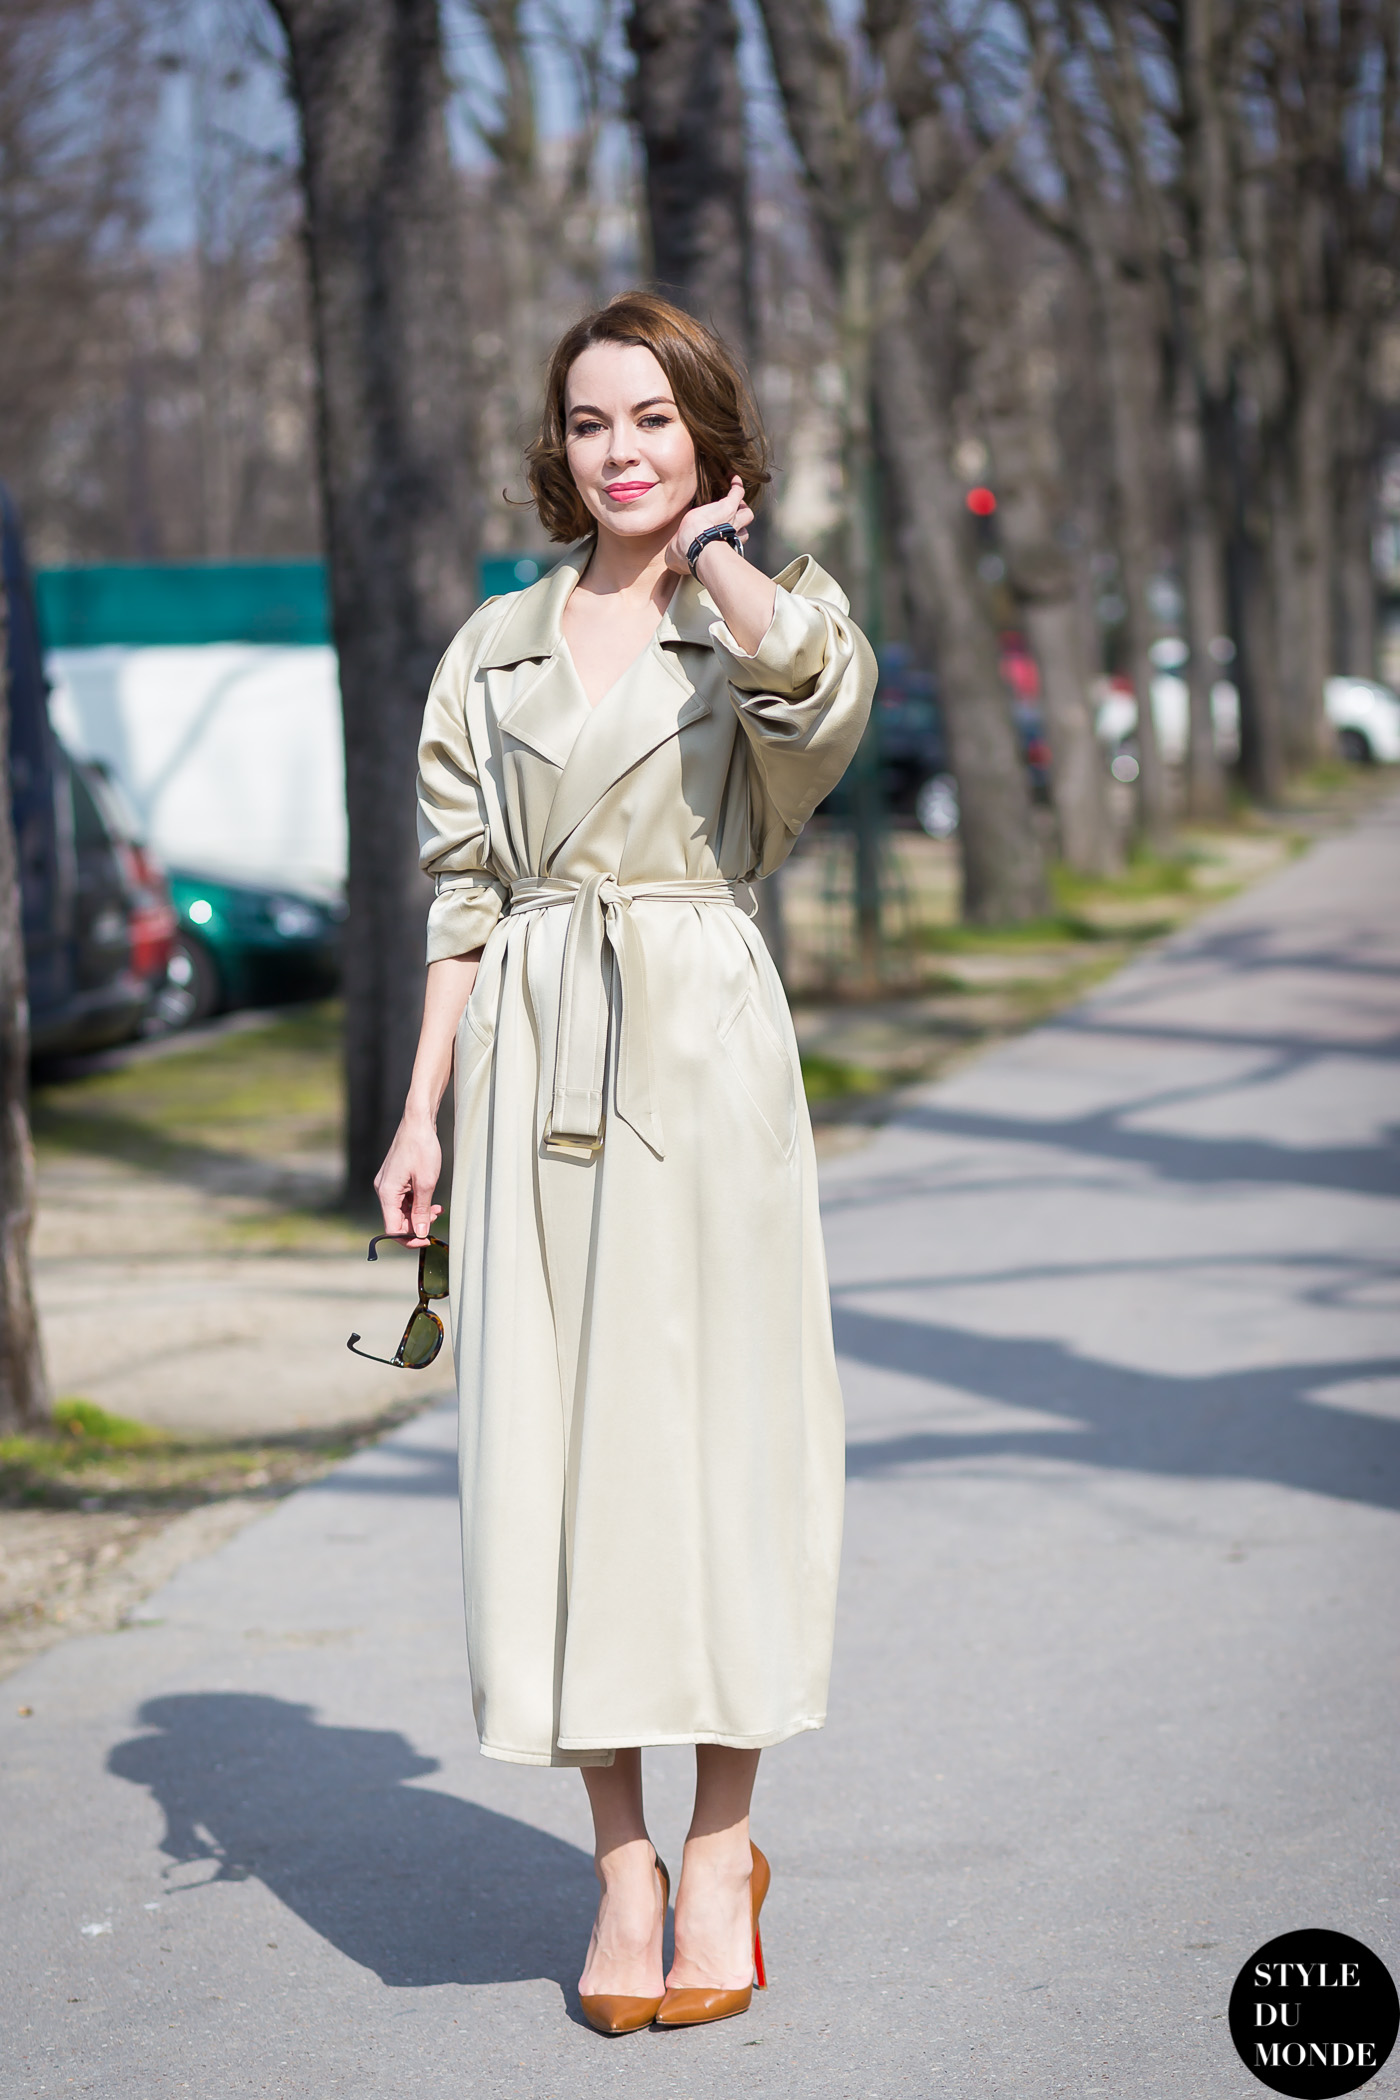 Ulyana-Sergeenko-by-STYLEDUMONDE-Street-Style-Fashion-Blog_MG_6944